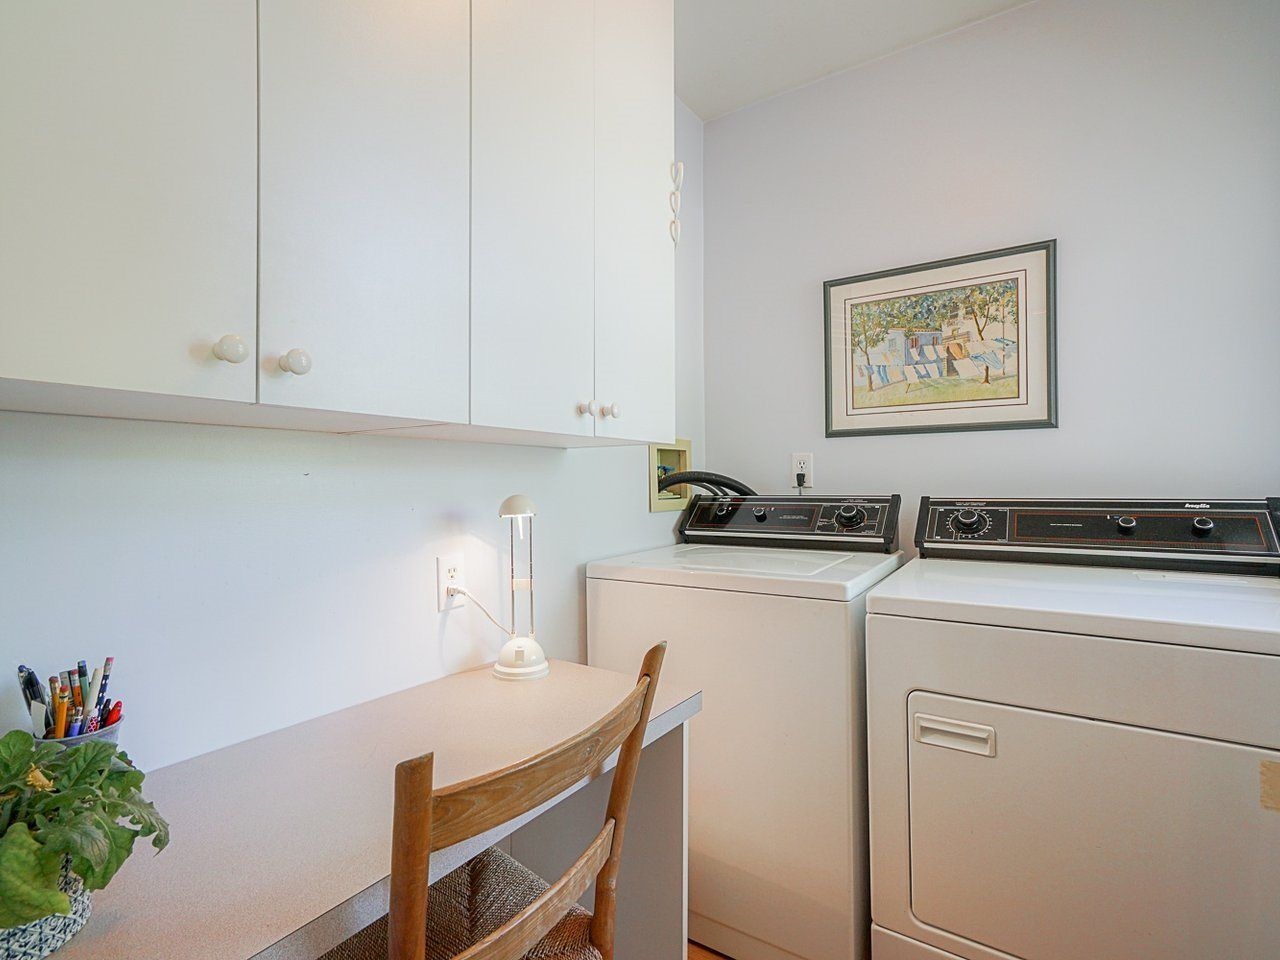 """Photo 31: Photos: 4 235 E KEITH Road in North Vancouver: Lower Lonsdale Townhouse for sale in """"Carriage Hill"""" : MLS®# R2471169"""